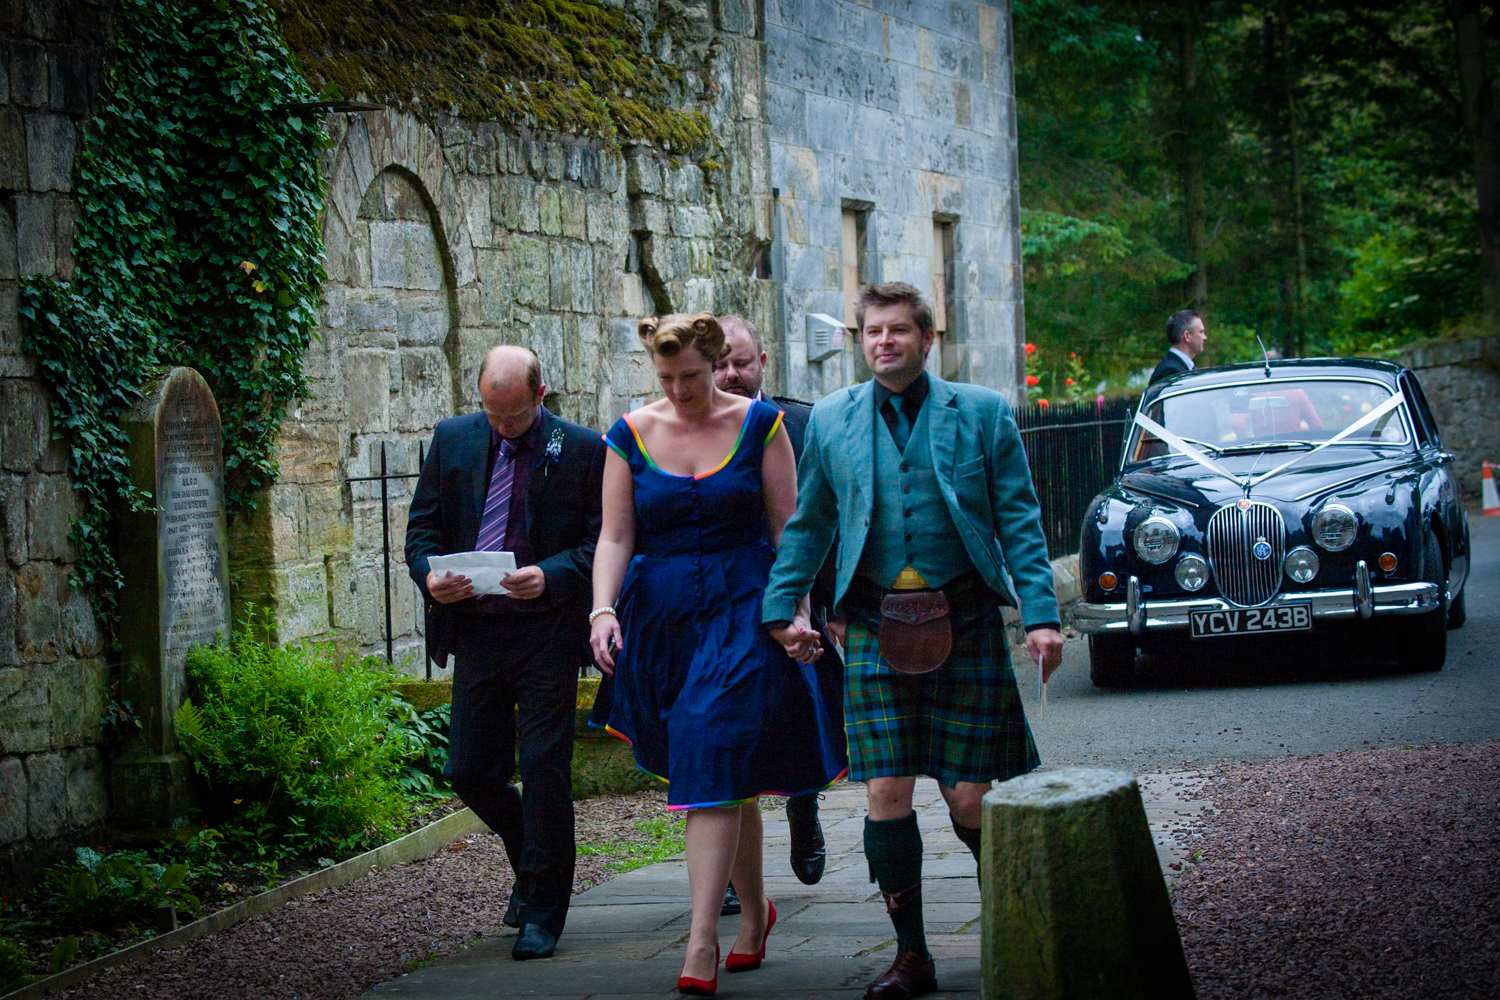 Clare and Charles wedding day blog-10.jpg